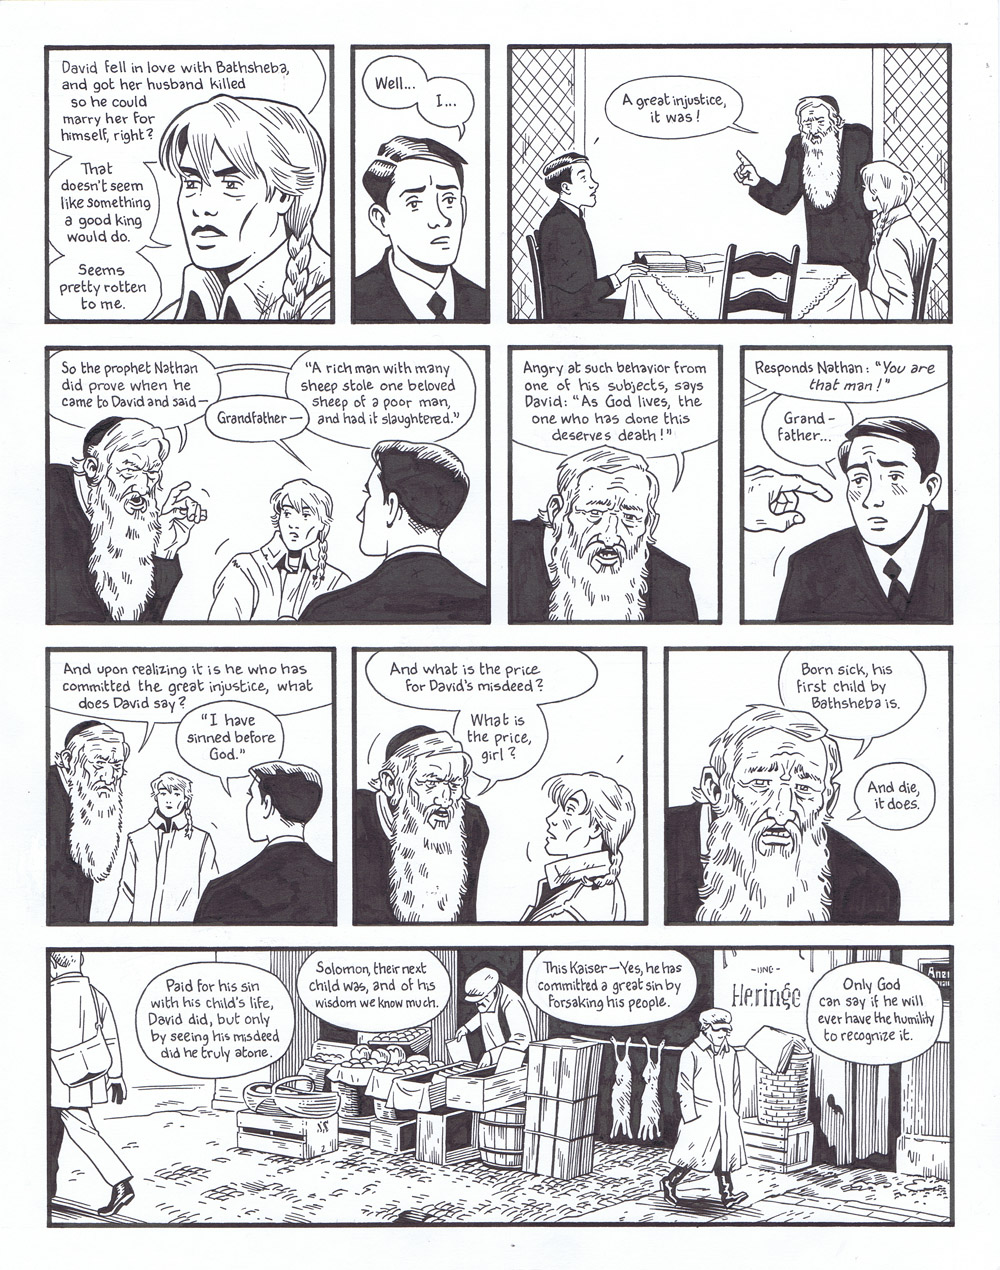 Berlin: Book 2 - page 147